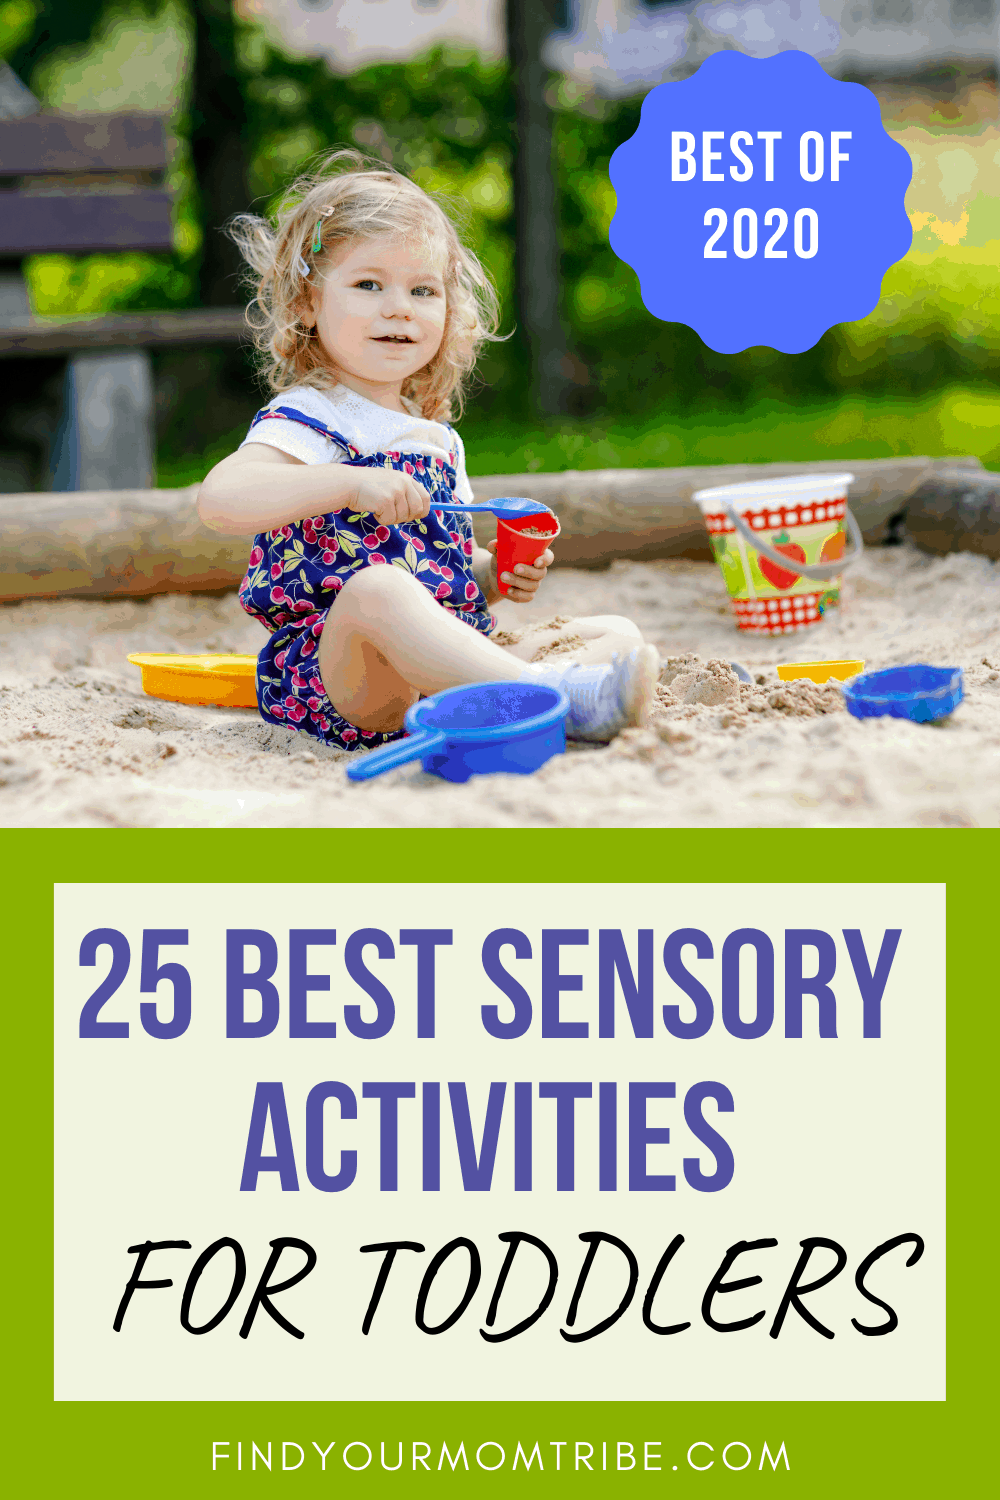 Pinterest sensory activities for toddlers